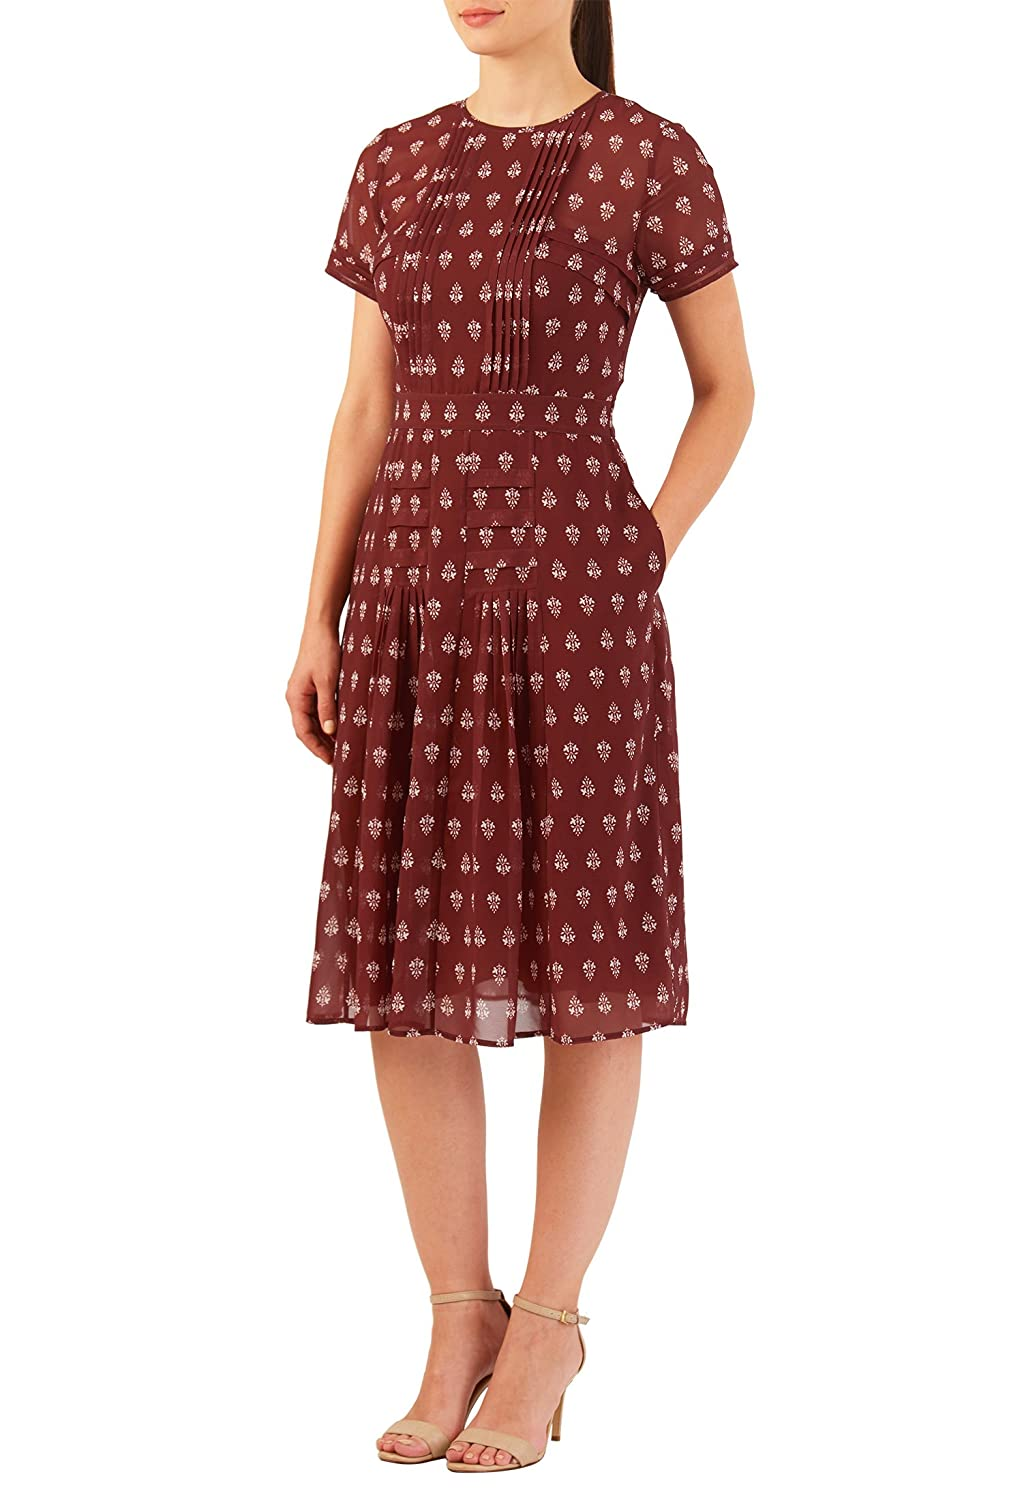 1930s Plus Size Dresses Pleated tile print georgette A-line dress $62.95 AT vintagedancer.com